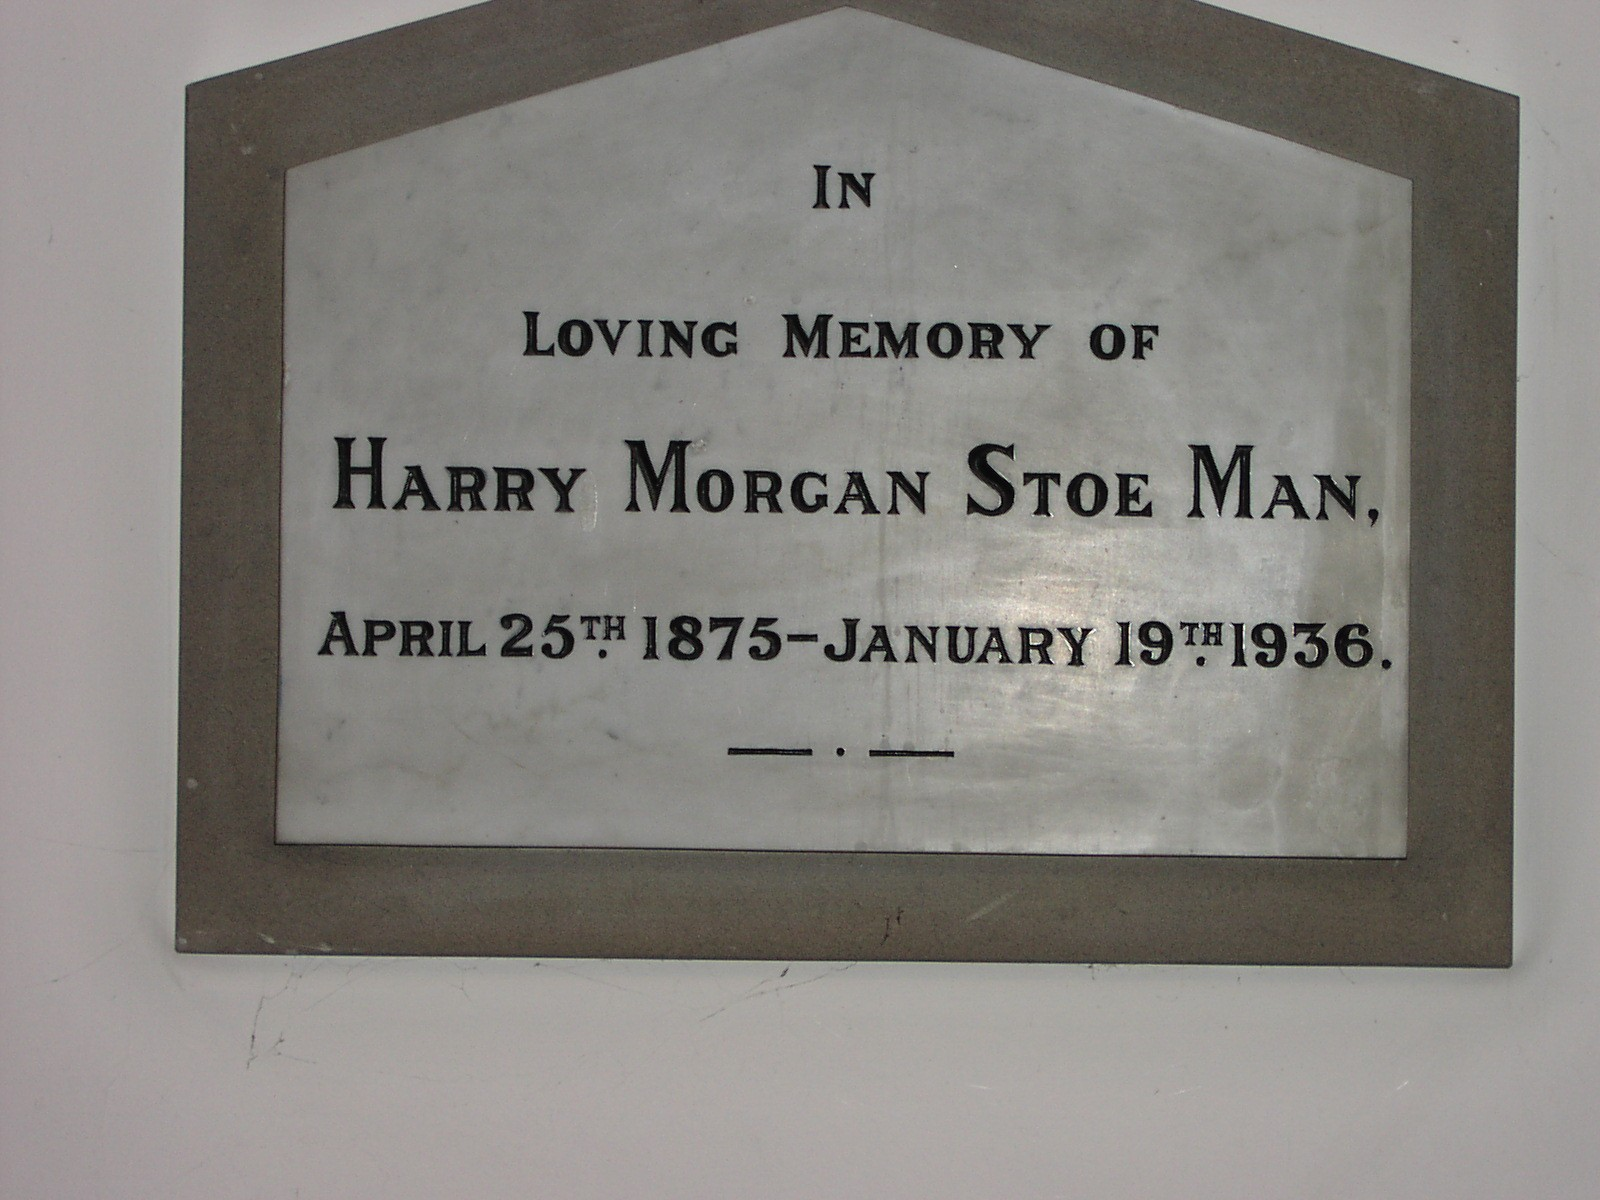 Harry Morgan Stoe Man Memorial at Halstead